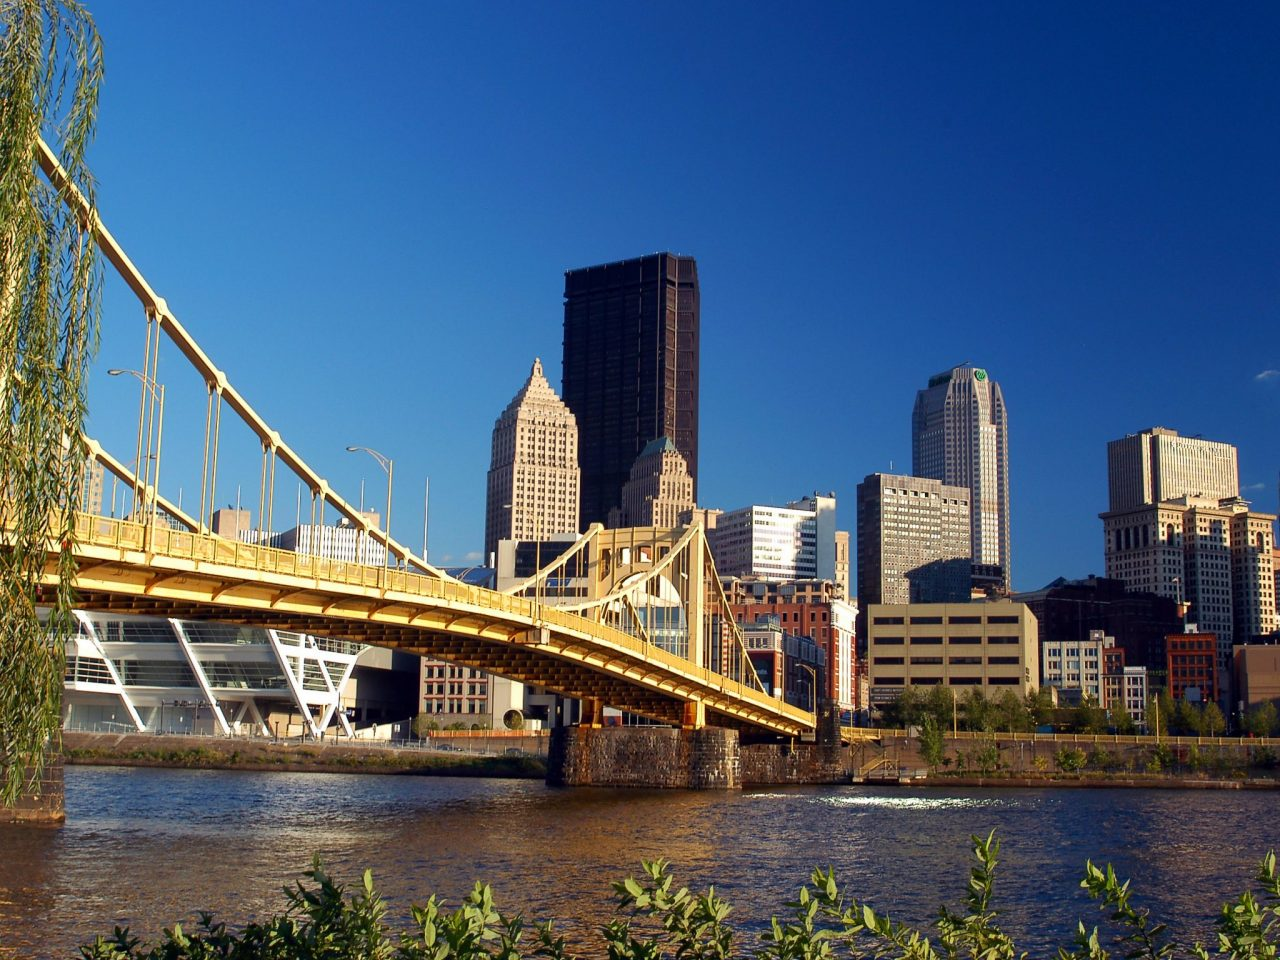 allegheny river with the skyline of downtown pittsburgh